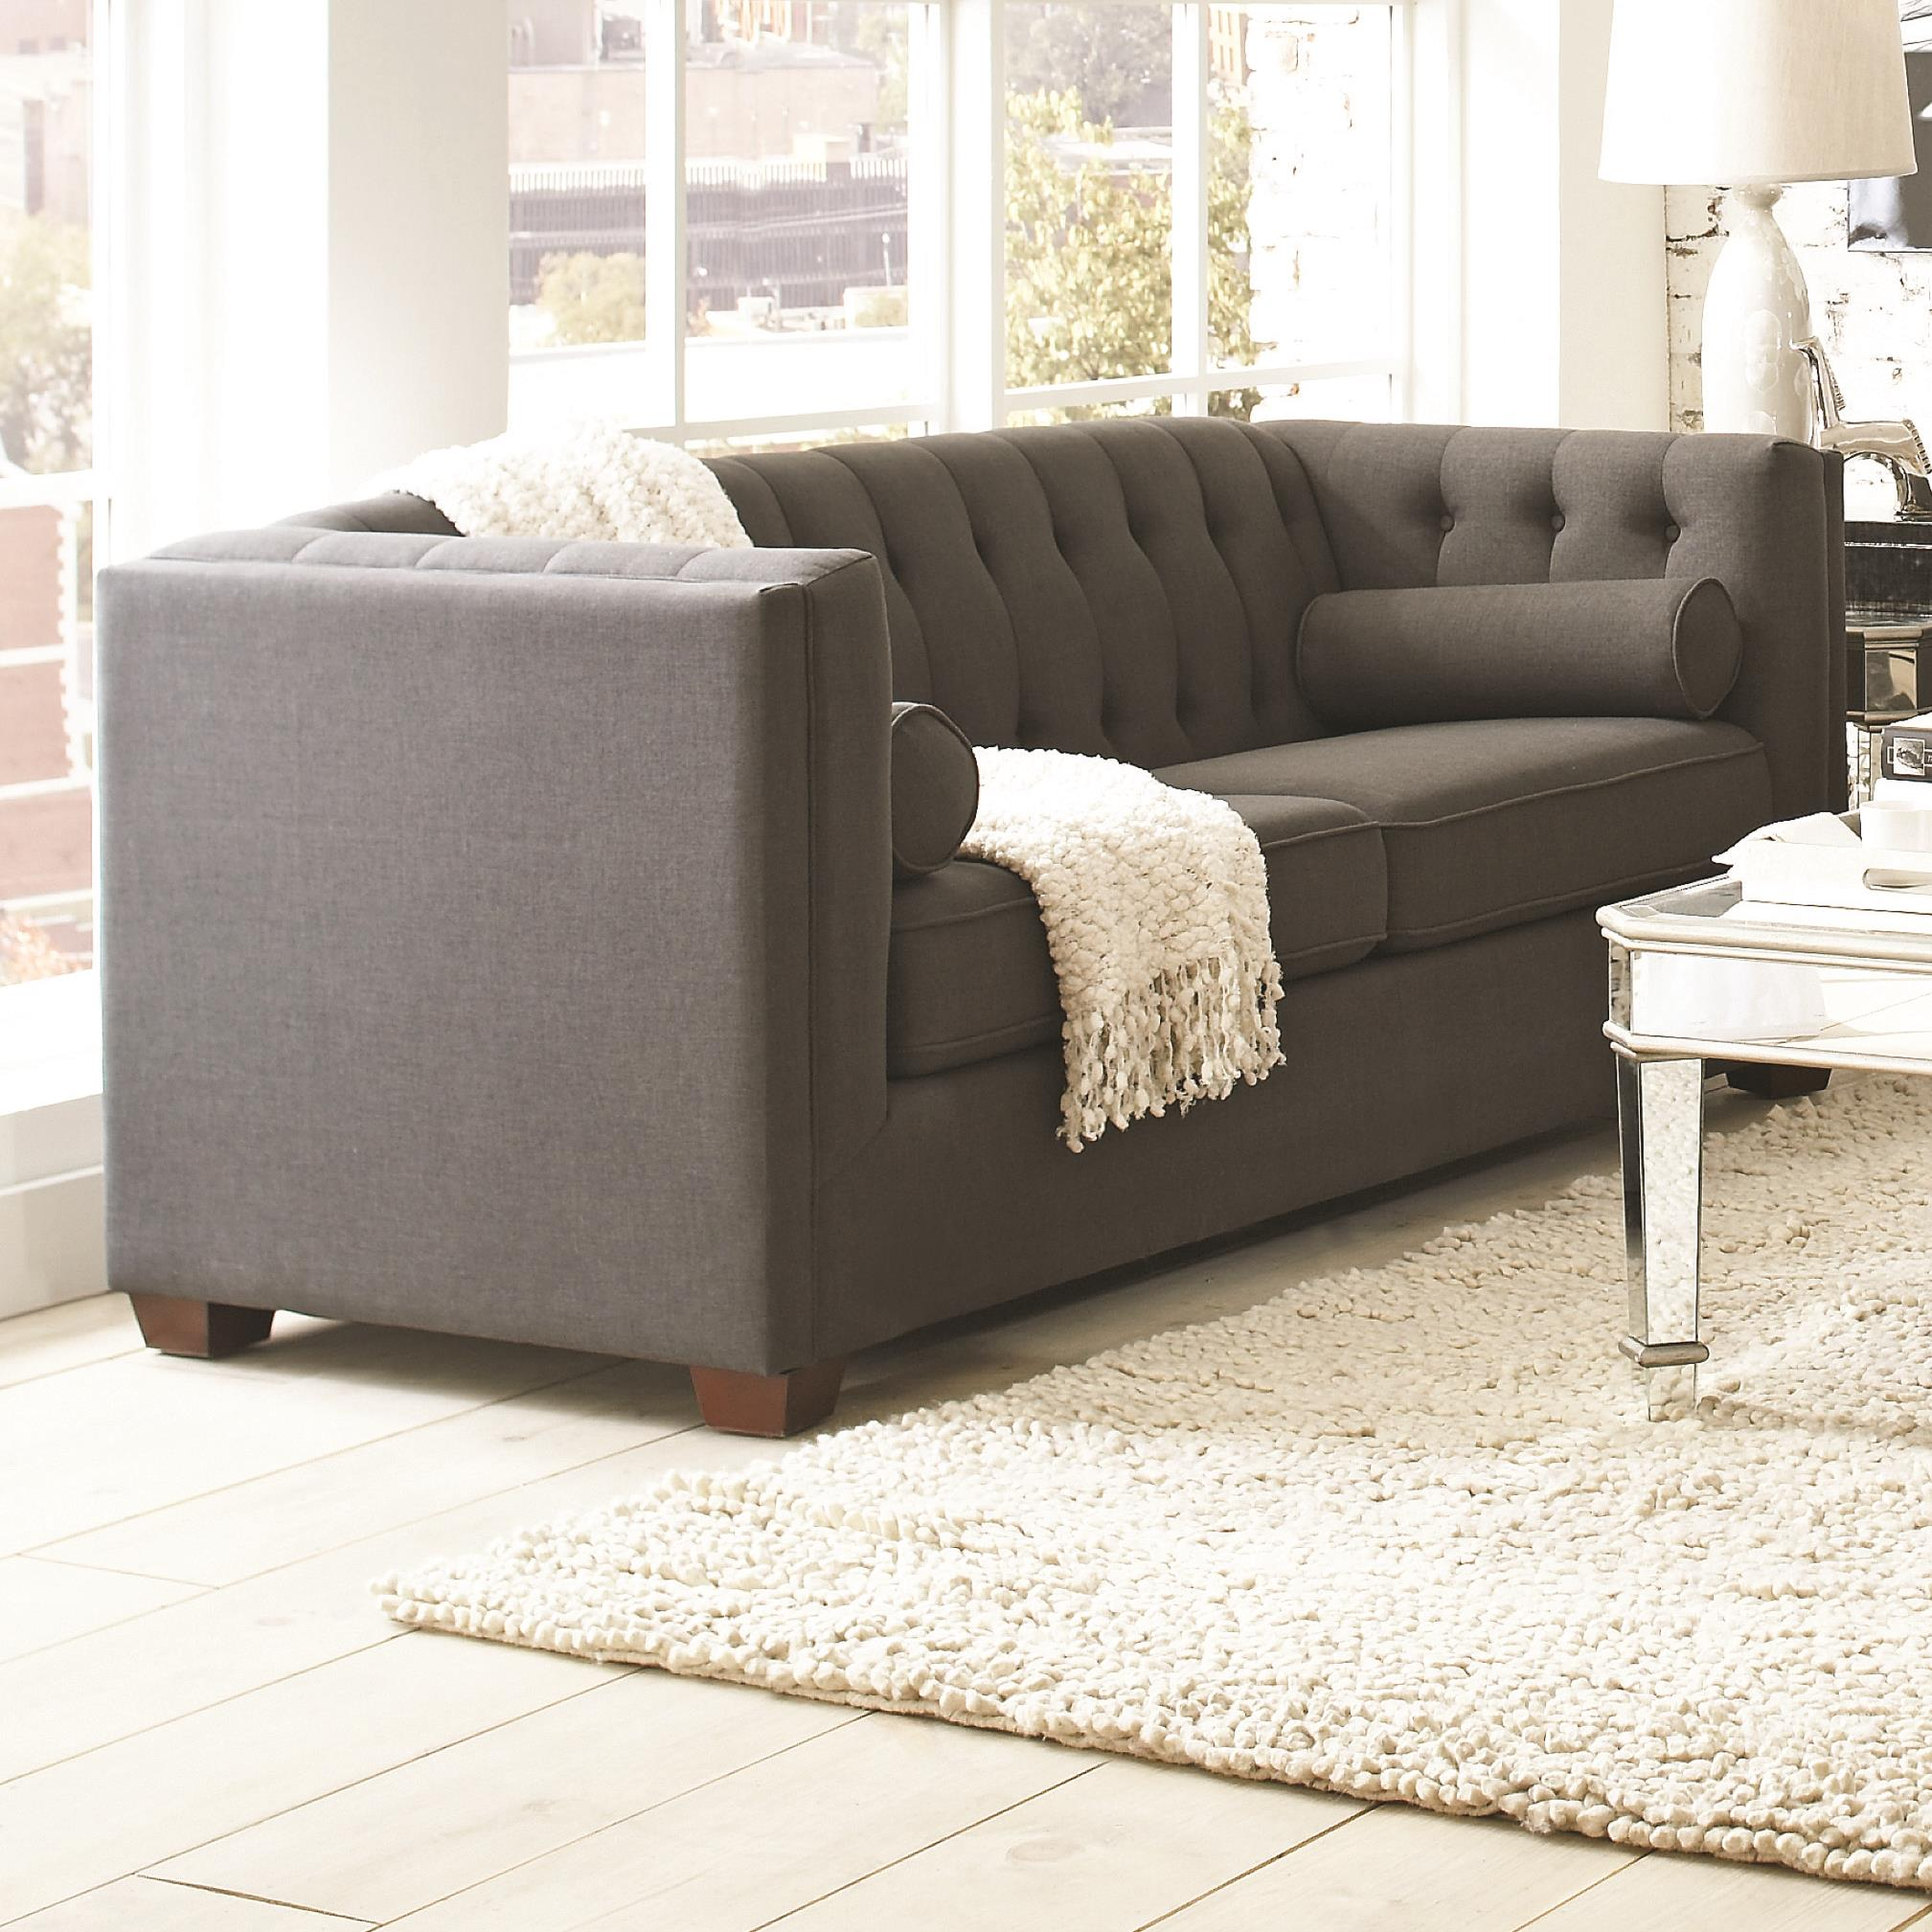 Coaster Cairns Sofa - Item Number: 504901-Charcoal